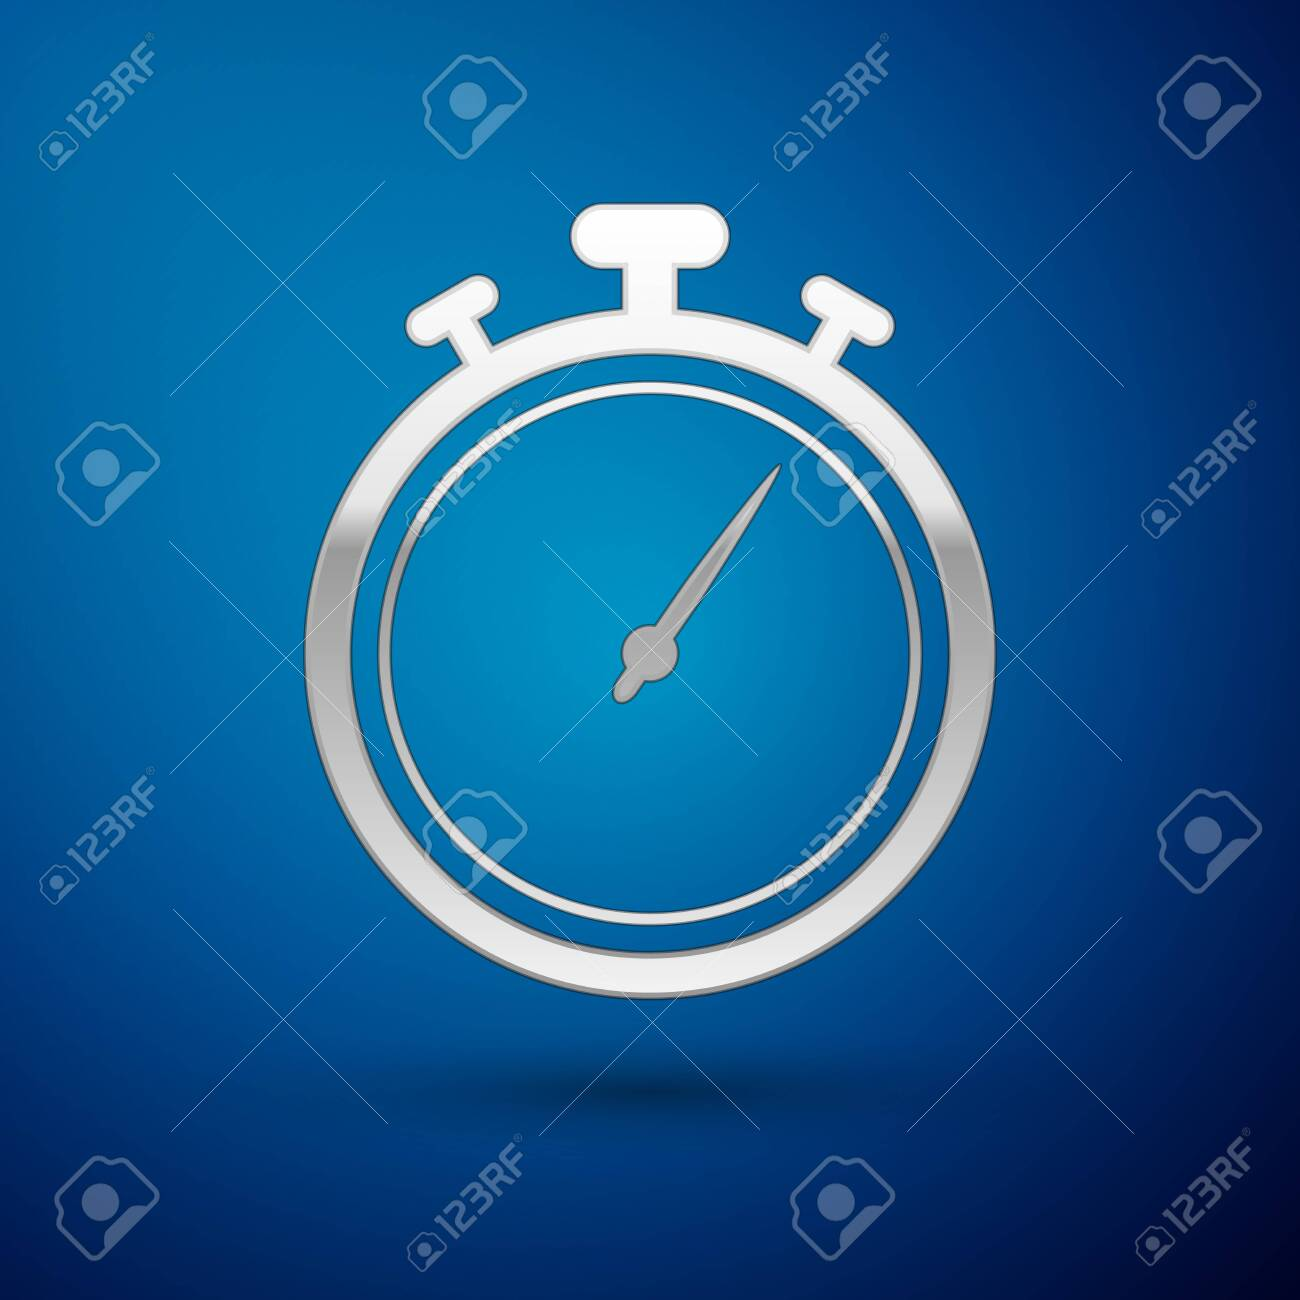 Silver Stopwatch icon isolated on blue background  Time timer